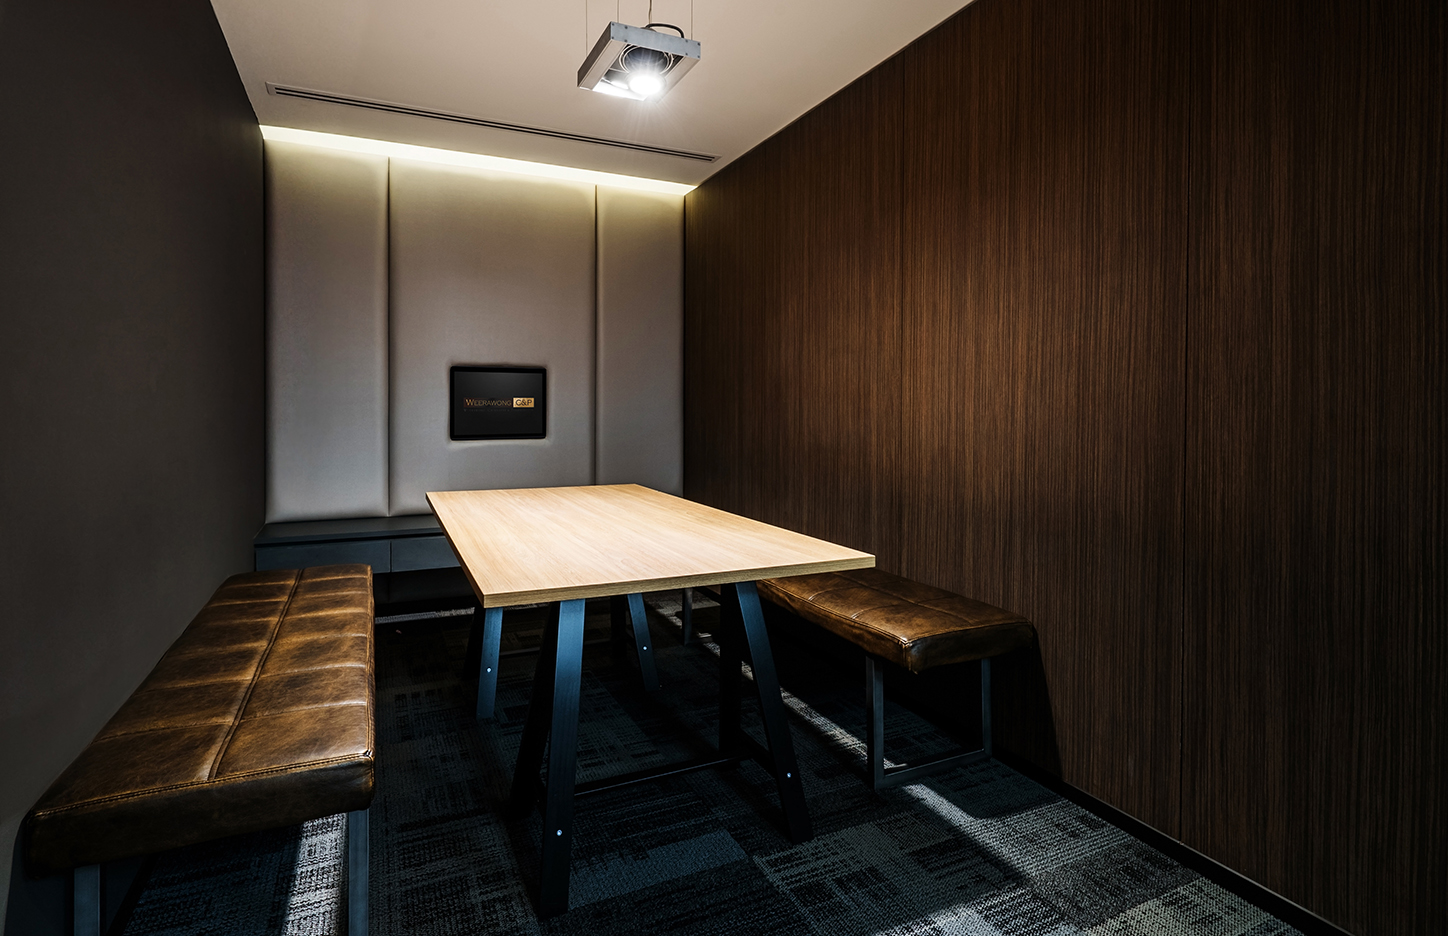 10design Weerawong C&P office interior design law firm 06